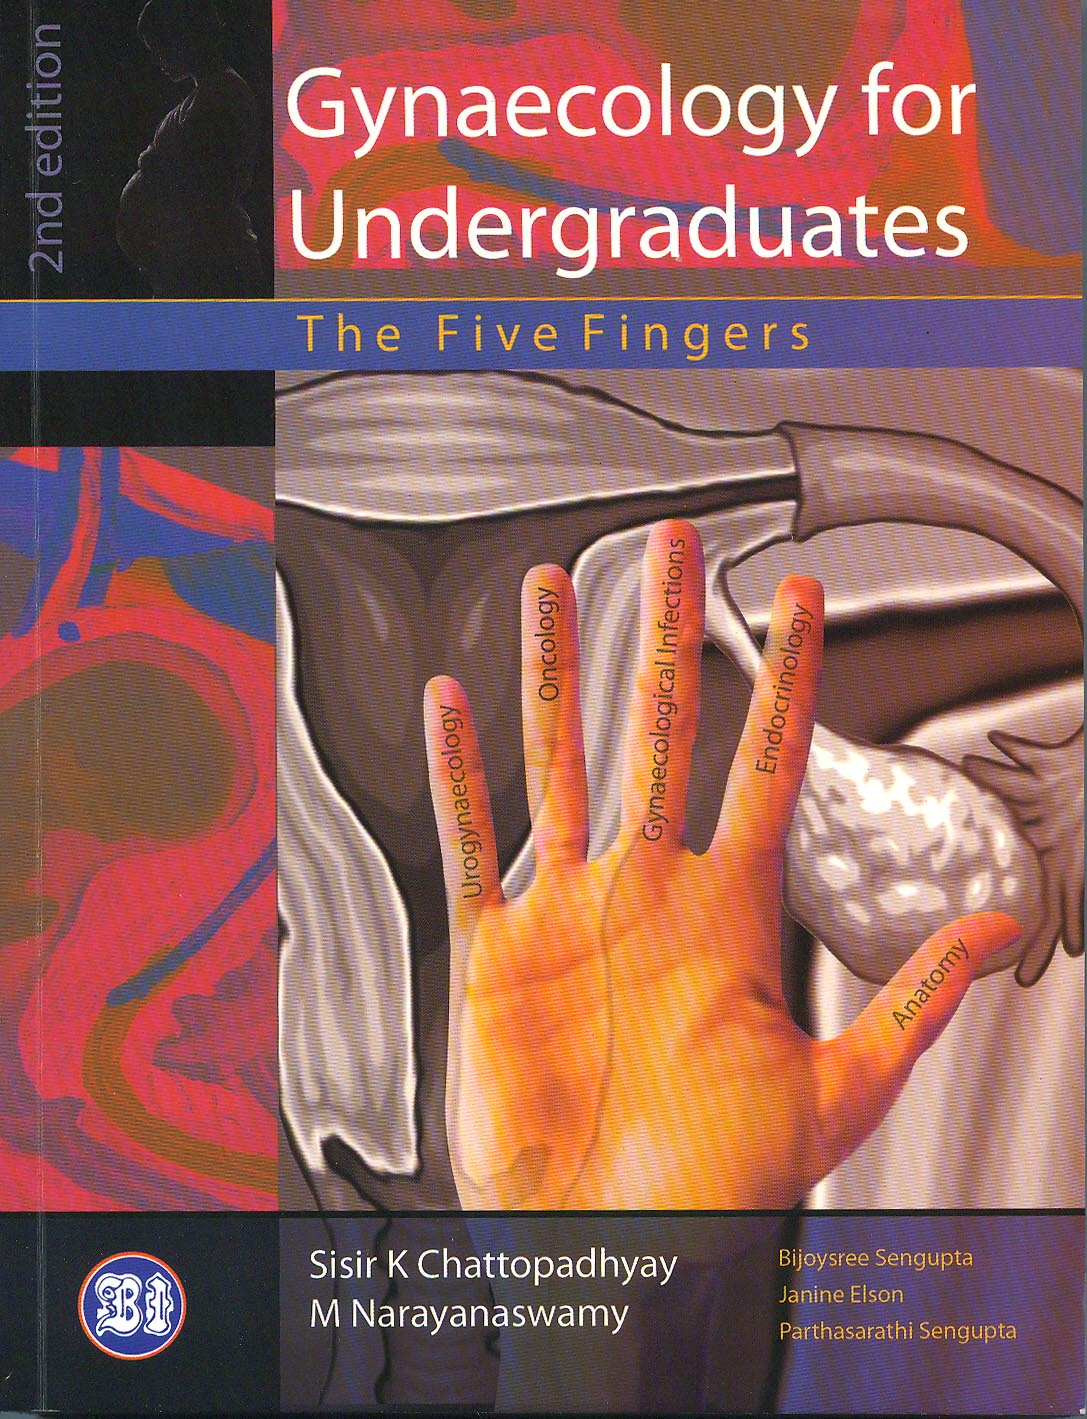 Gynaecology for Undergraduates: The Five Fingers